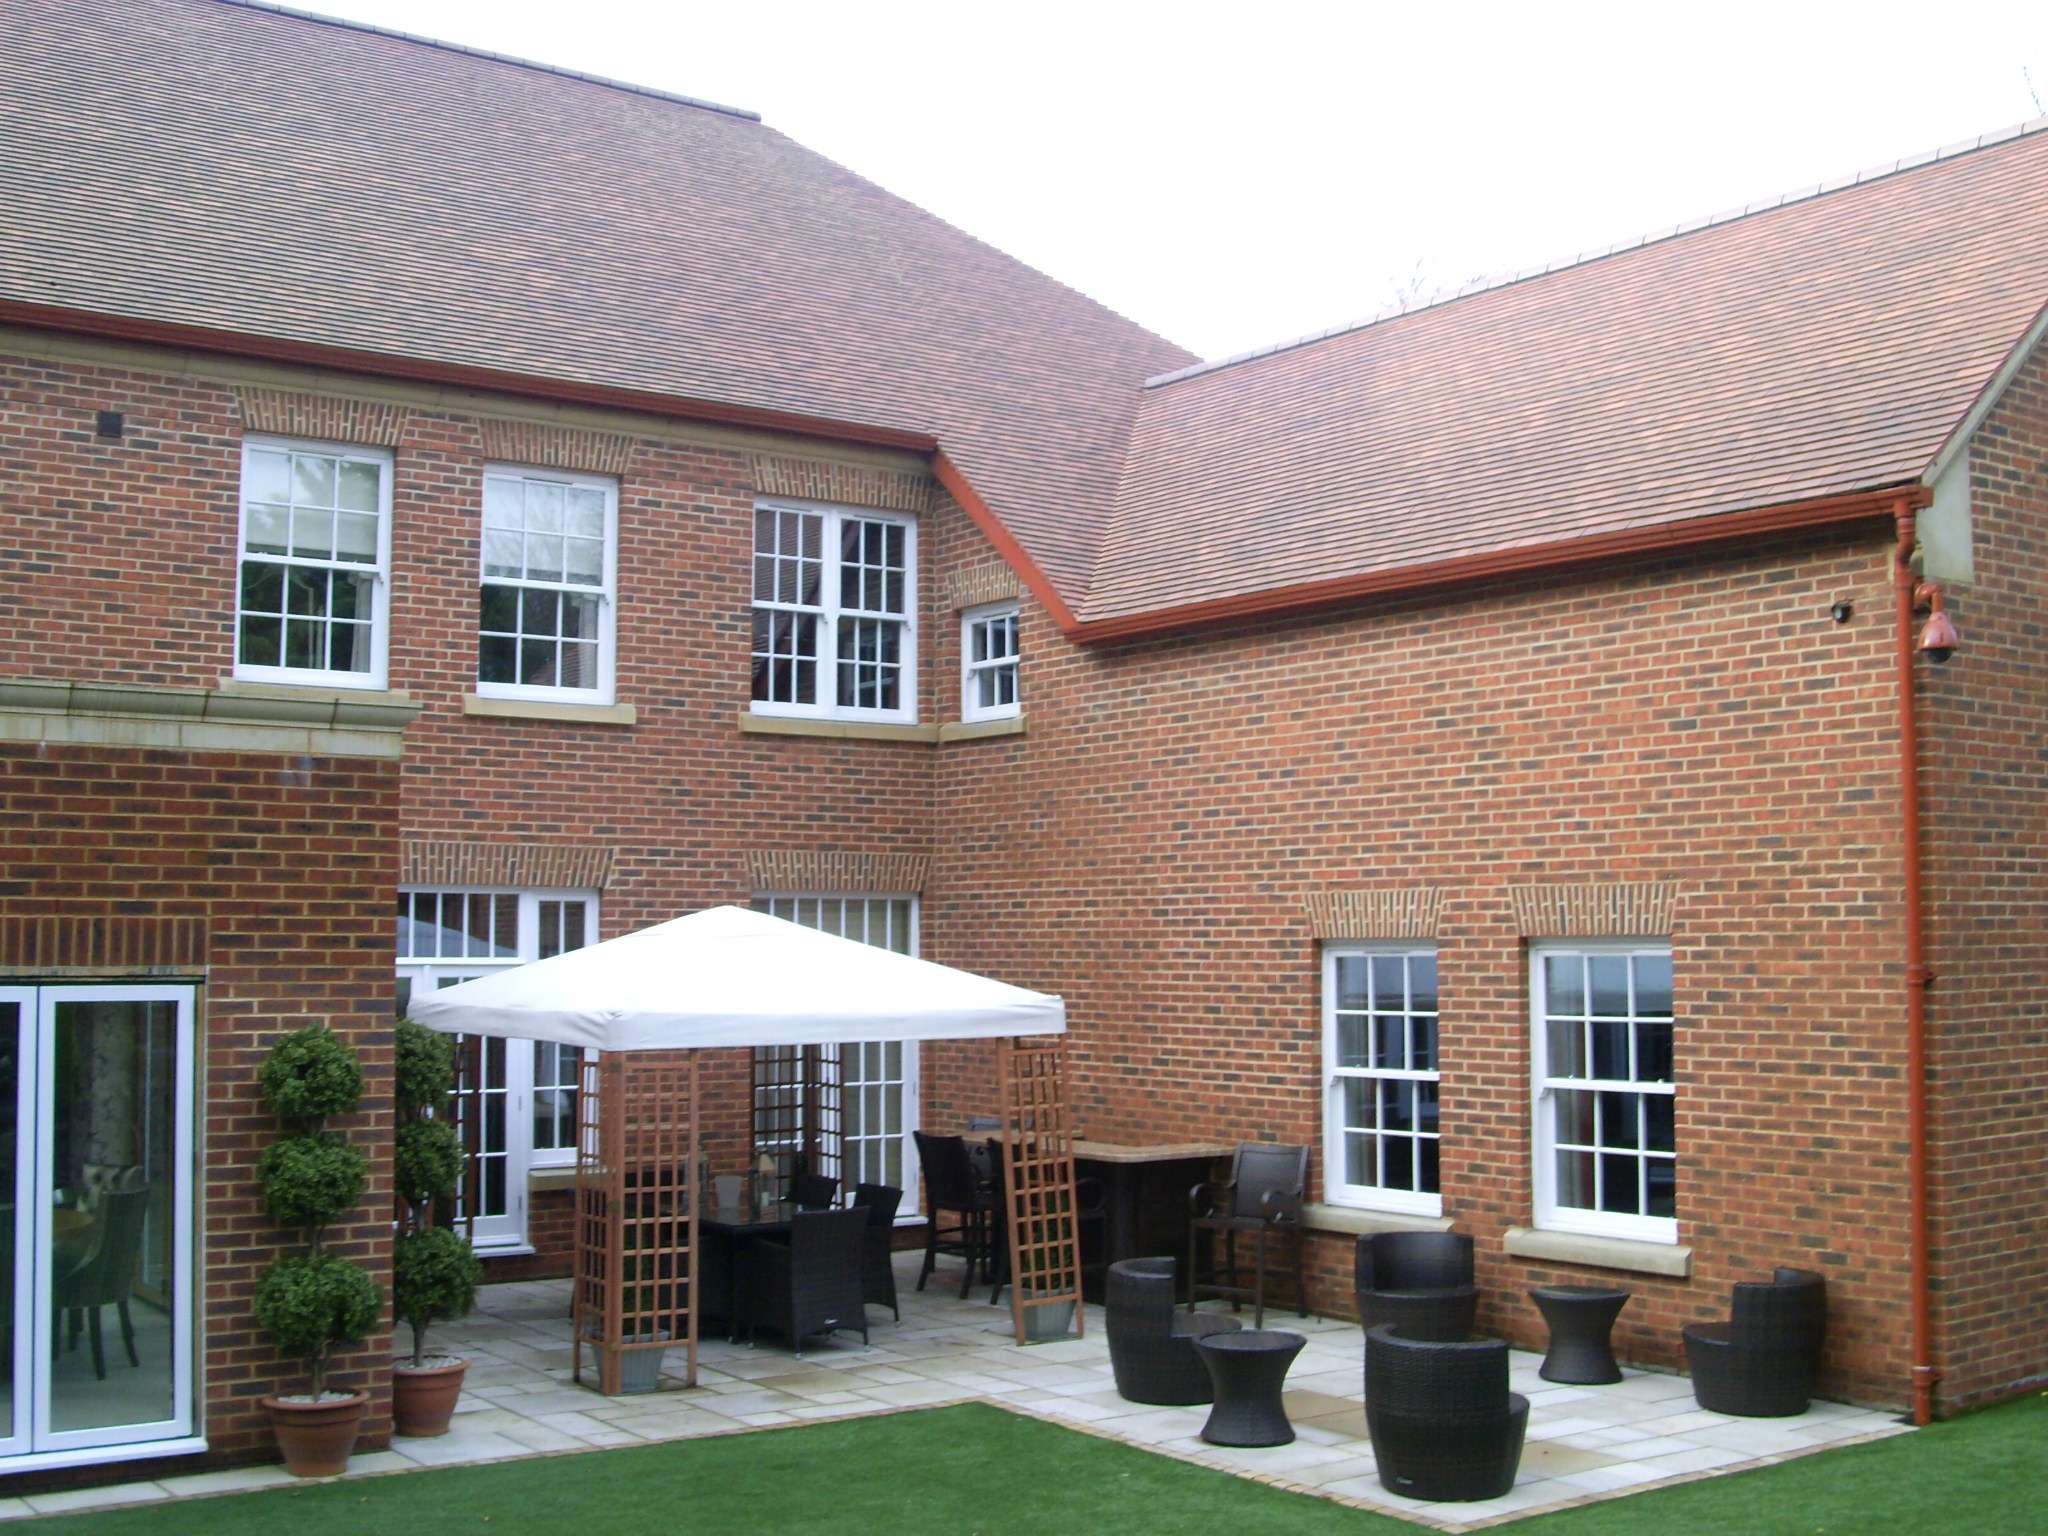 A Large 3 story new build house with garden furniture